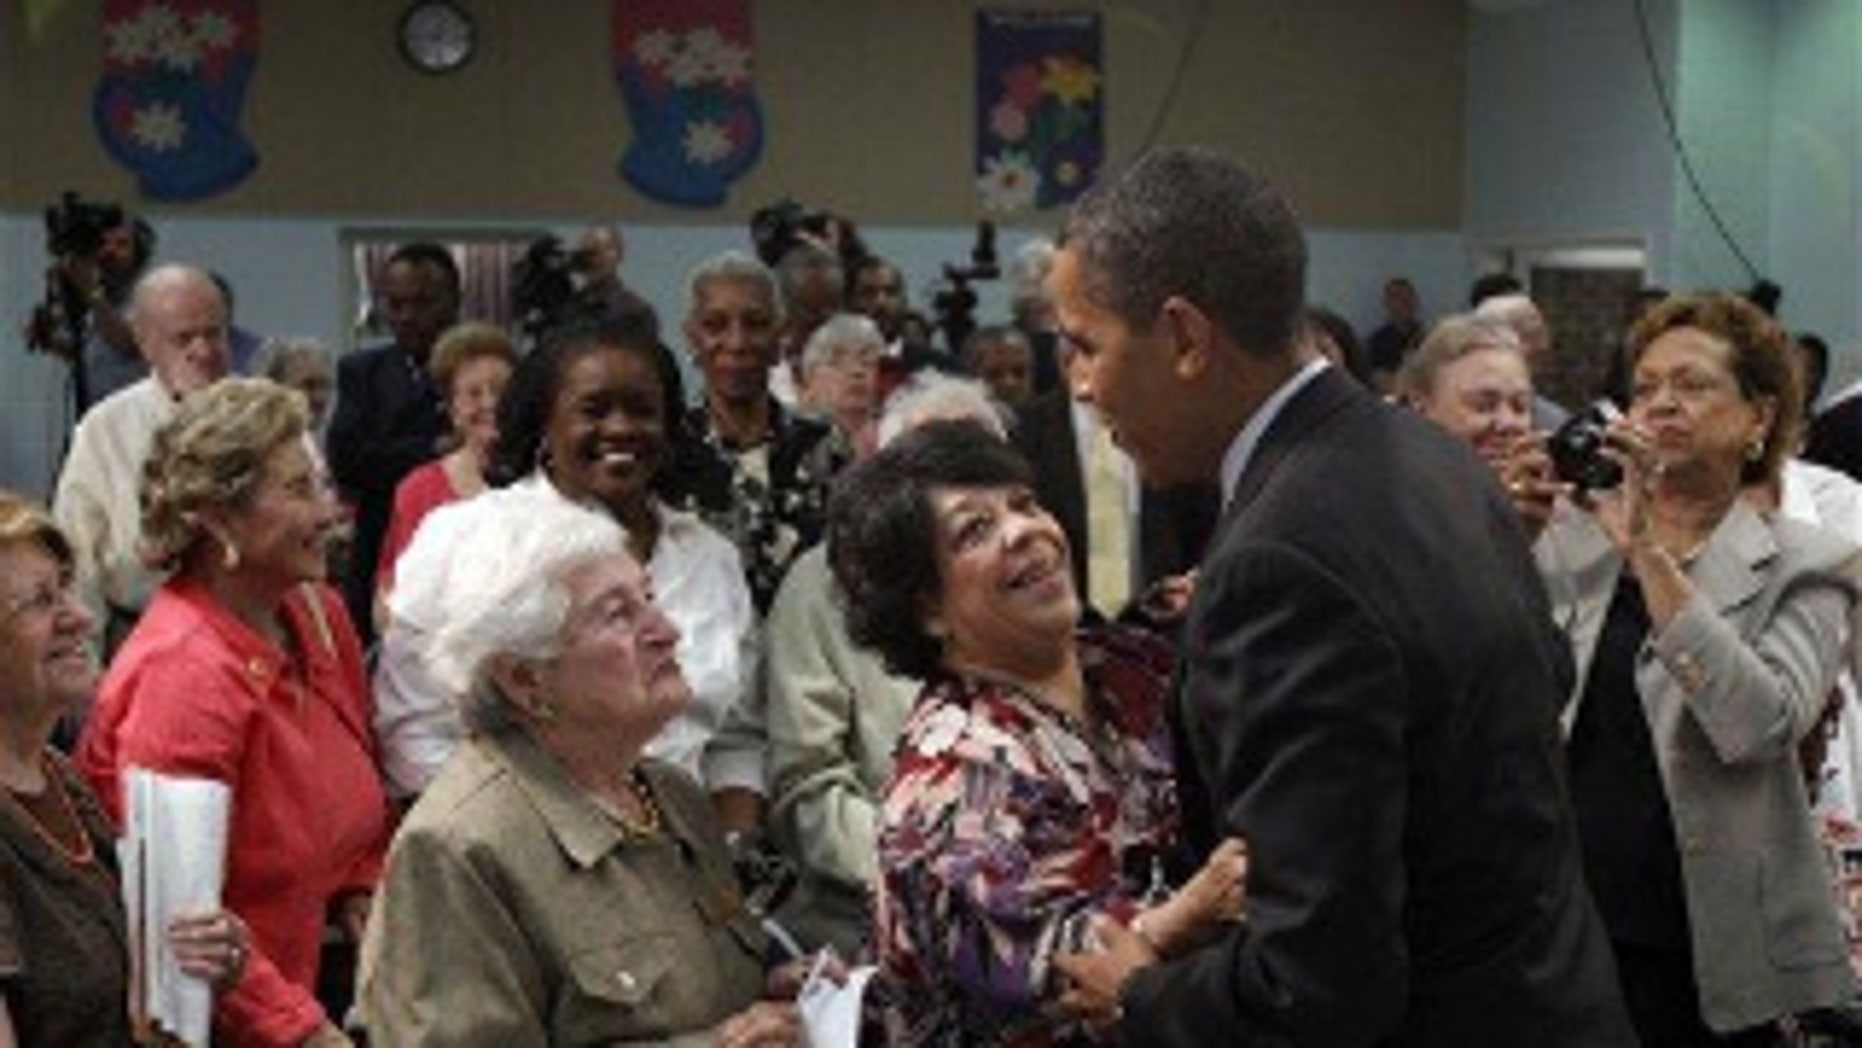 President Obama selling the health care changes to Maryland seniors on June 8, 2010, long after the bill became law. (AP Photo)